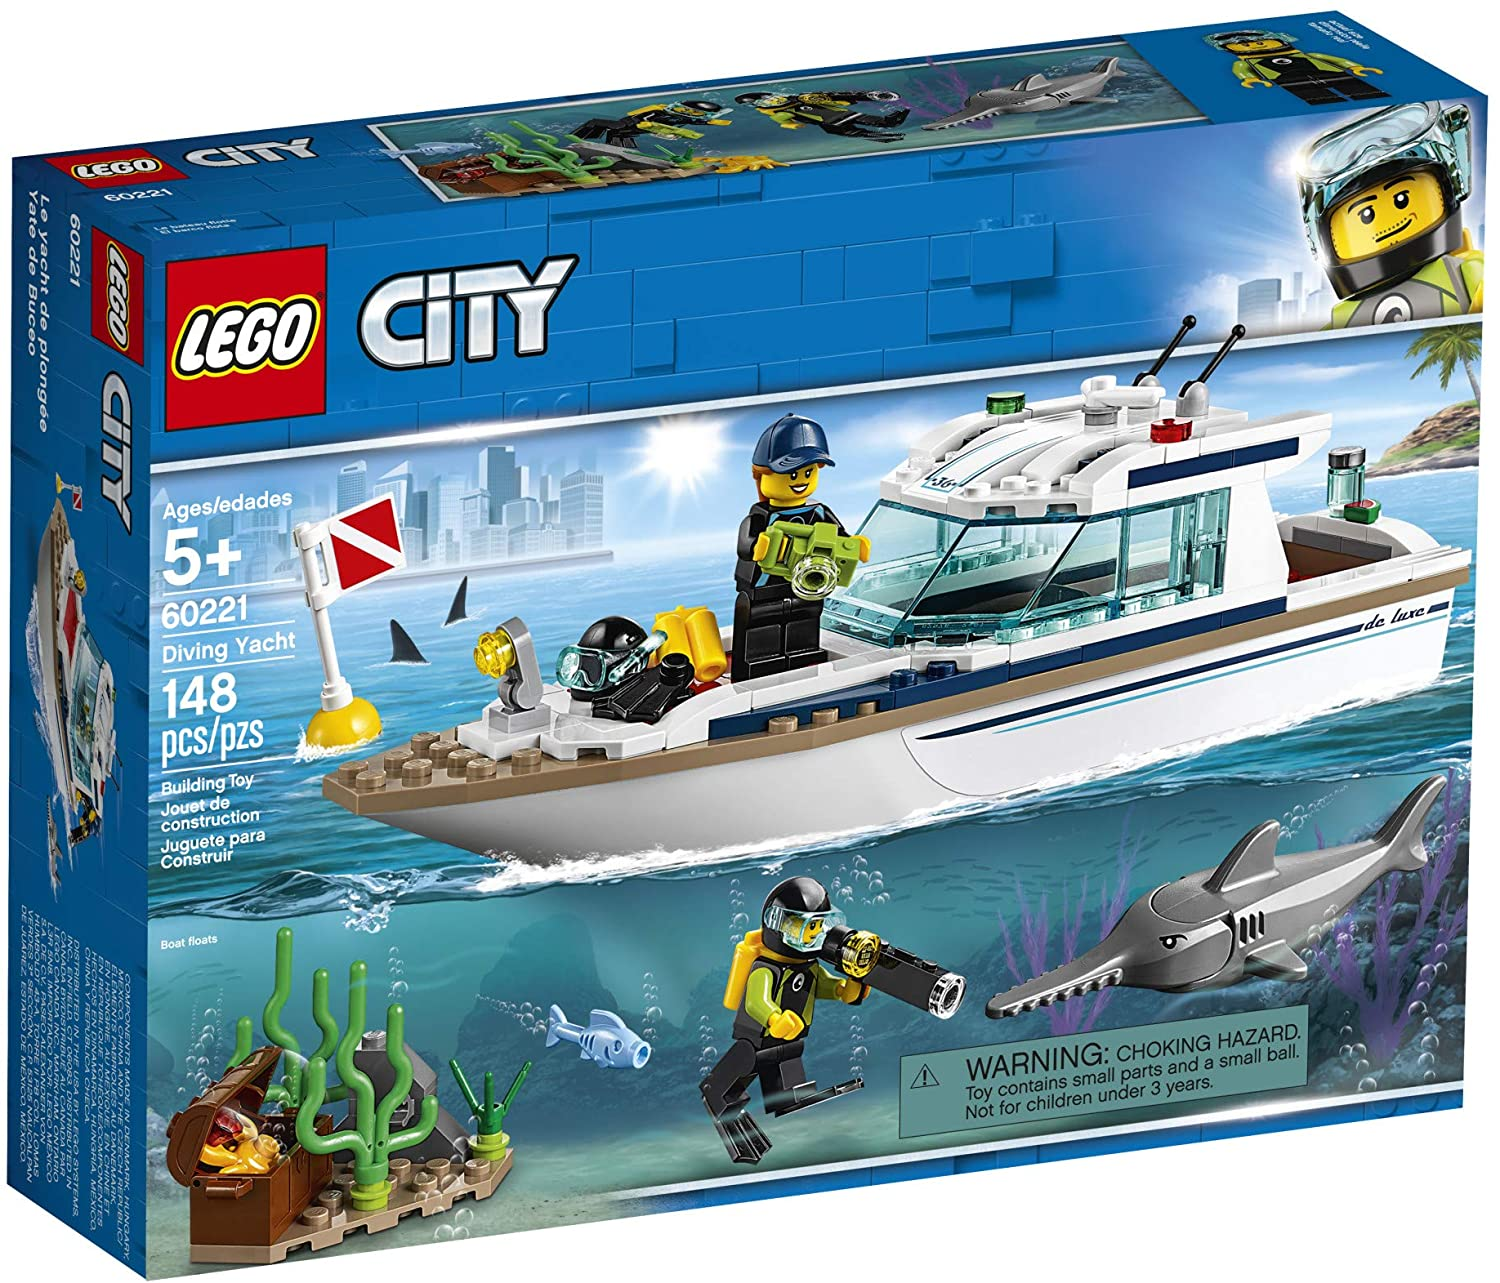 148 Piece LEGO City Great Vehicles Diving Yacht 60221 Building Kit New 2019